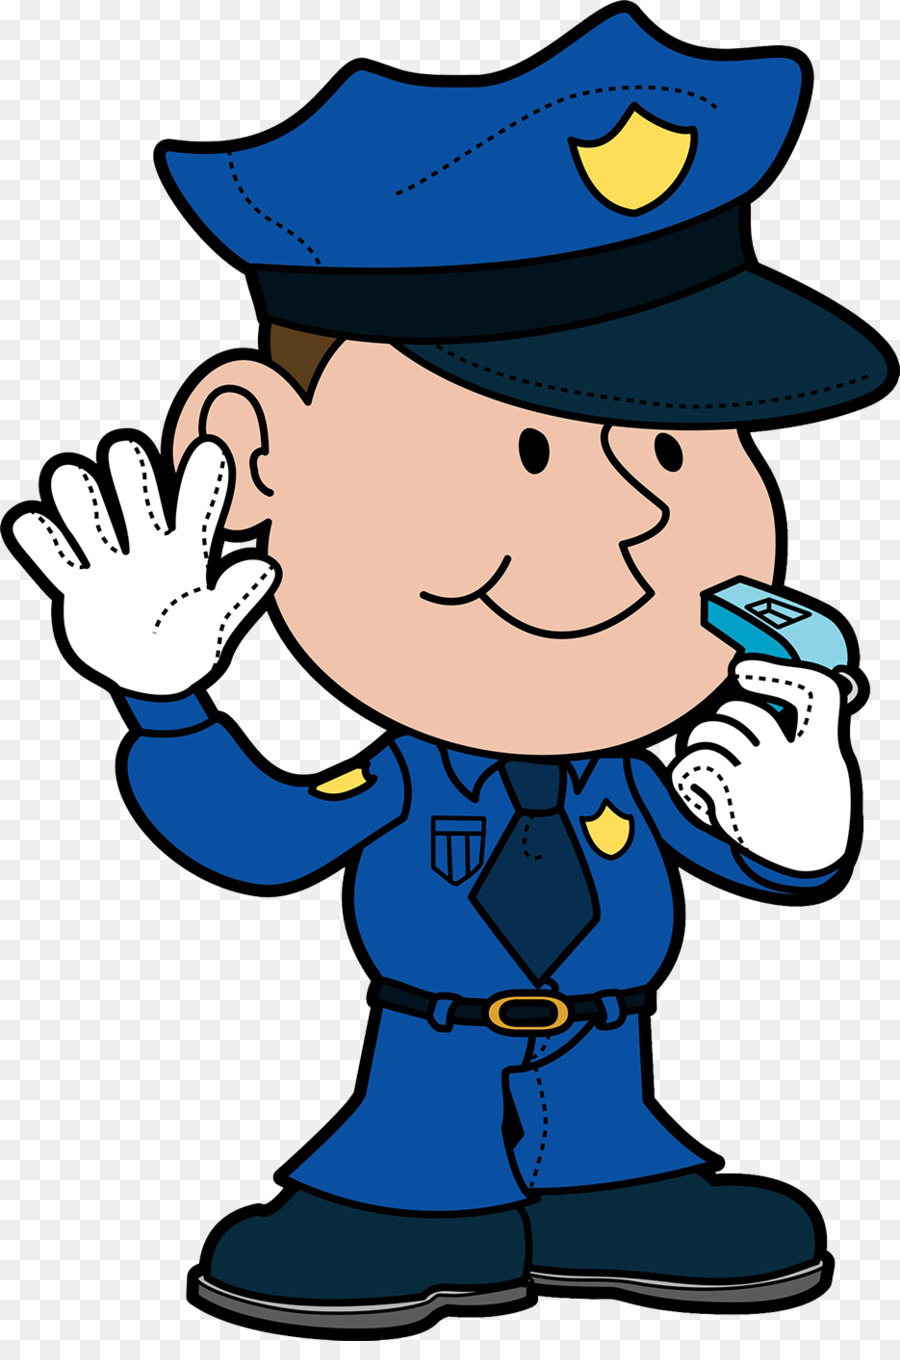 Clipart police officers 5 » Clipart Station.